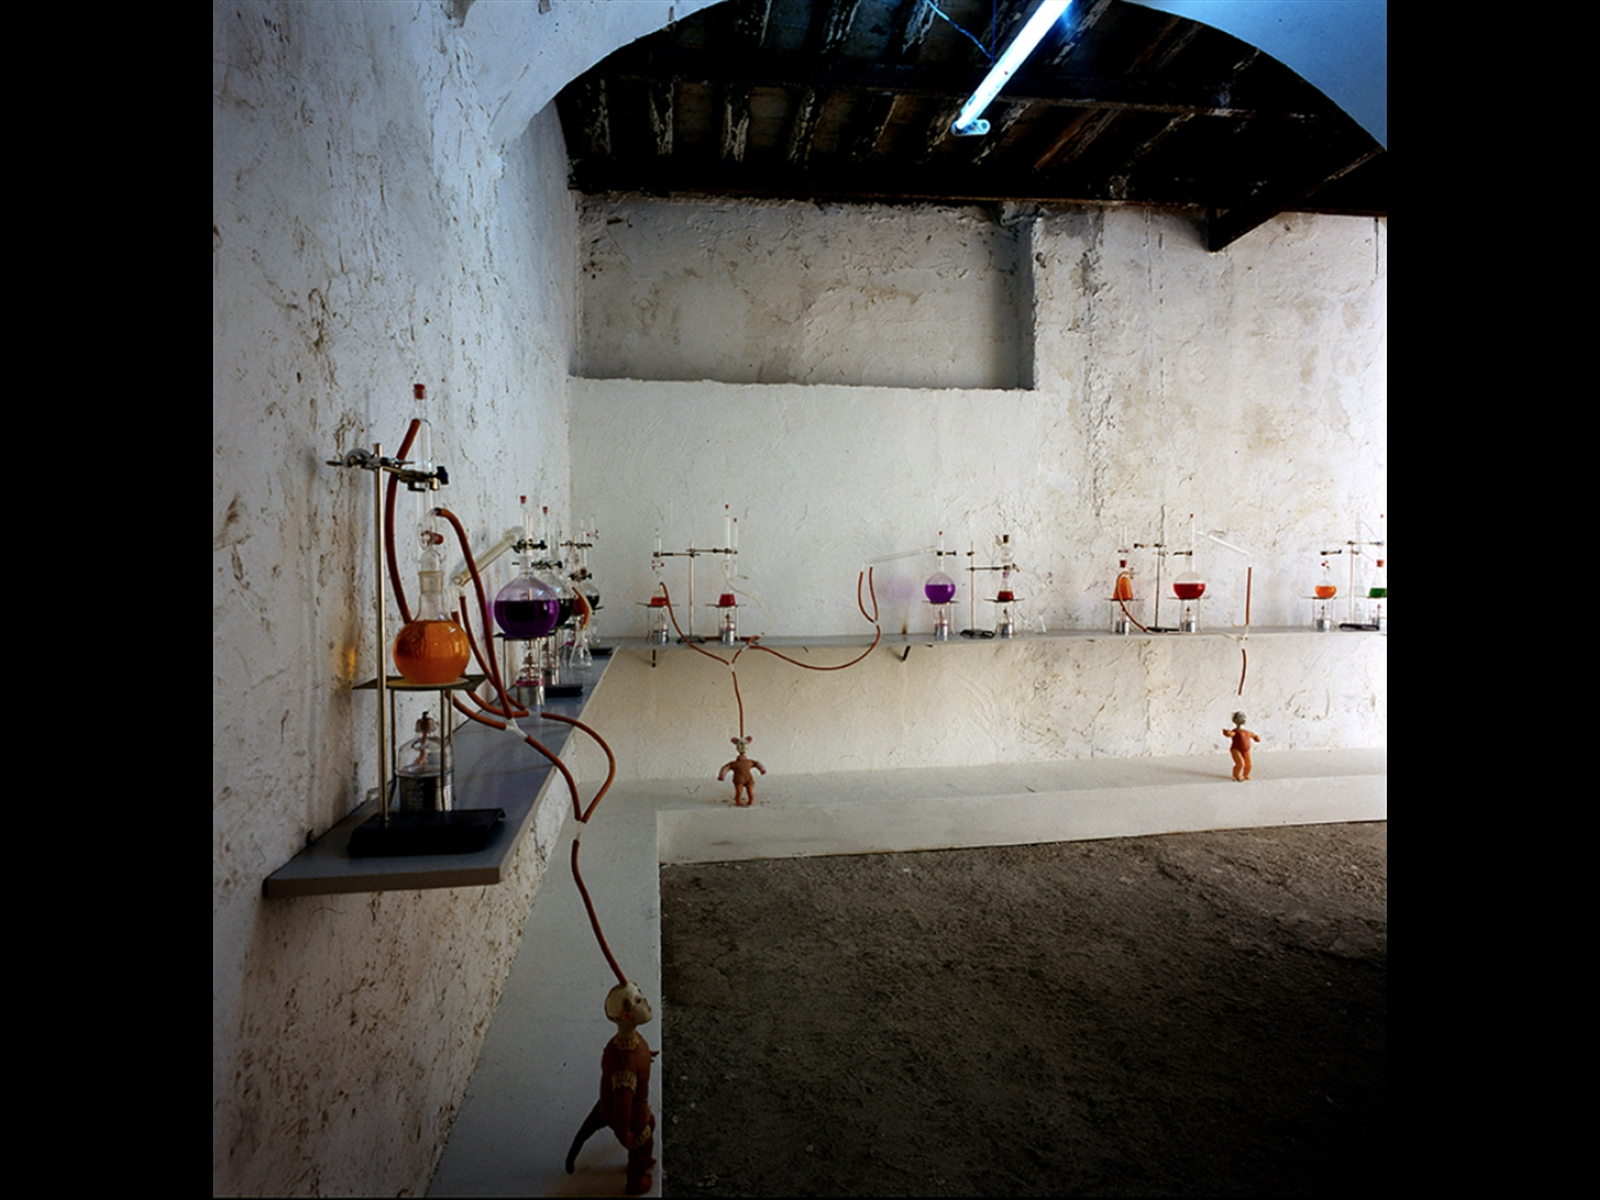 installation, environment measurements. Private collection. © Rodolfo Fiorenza